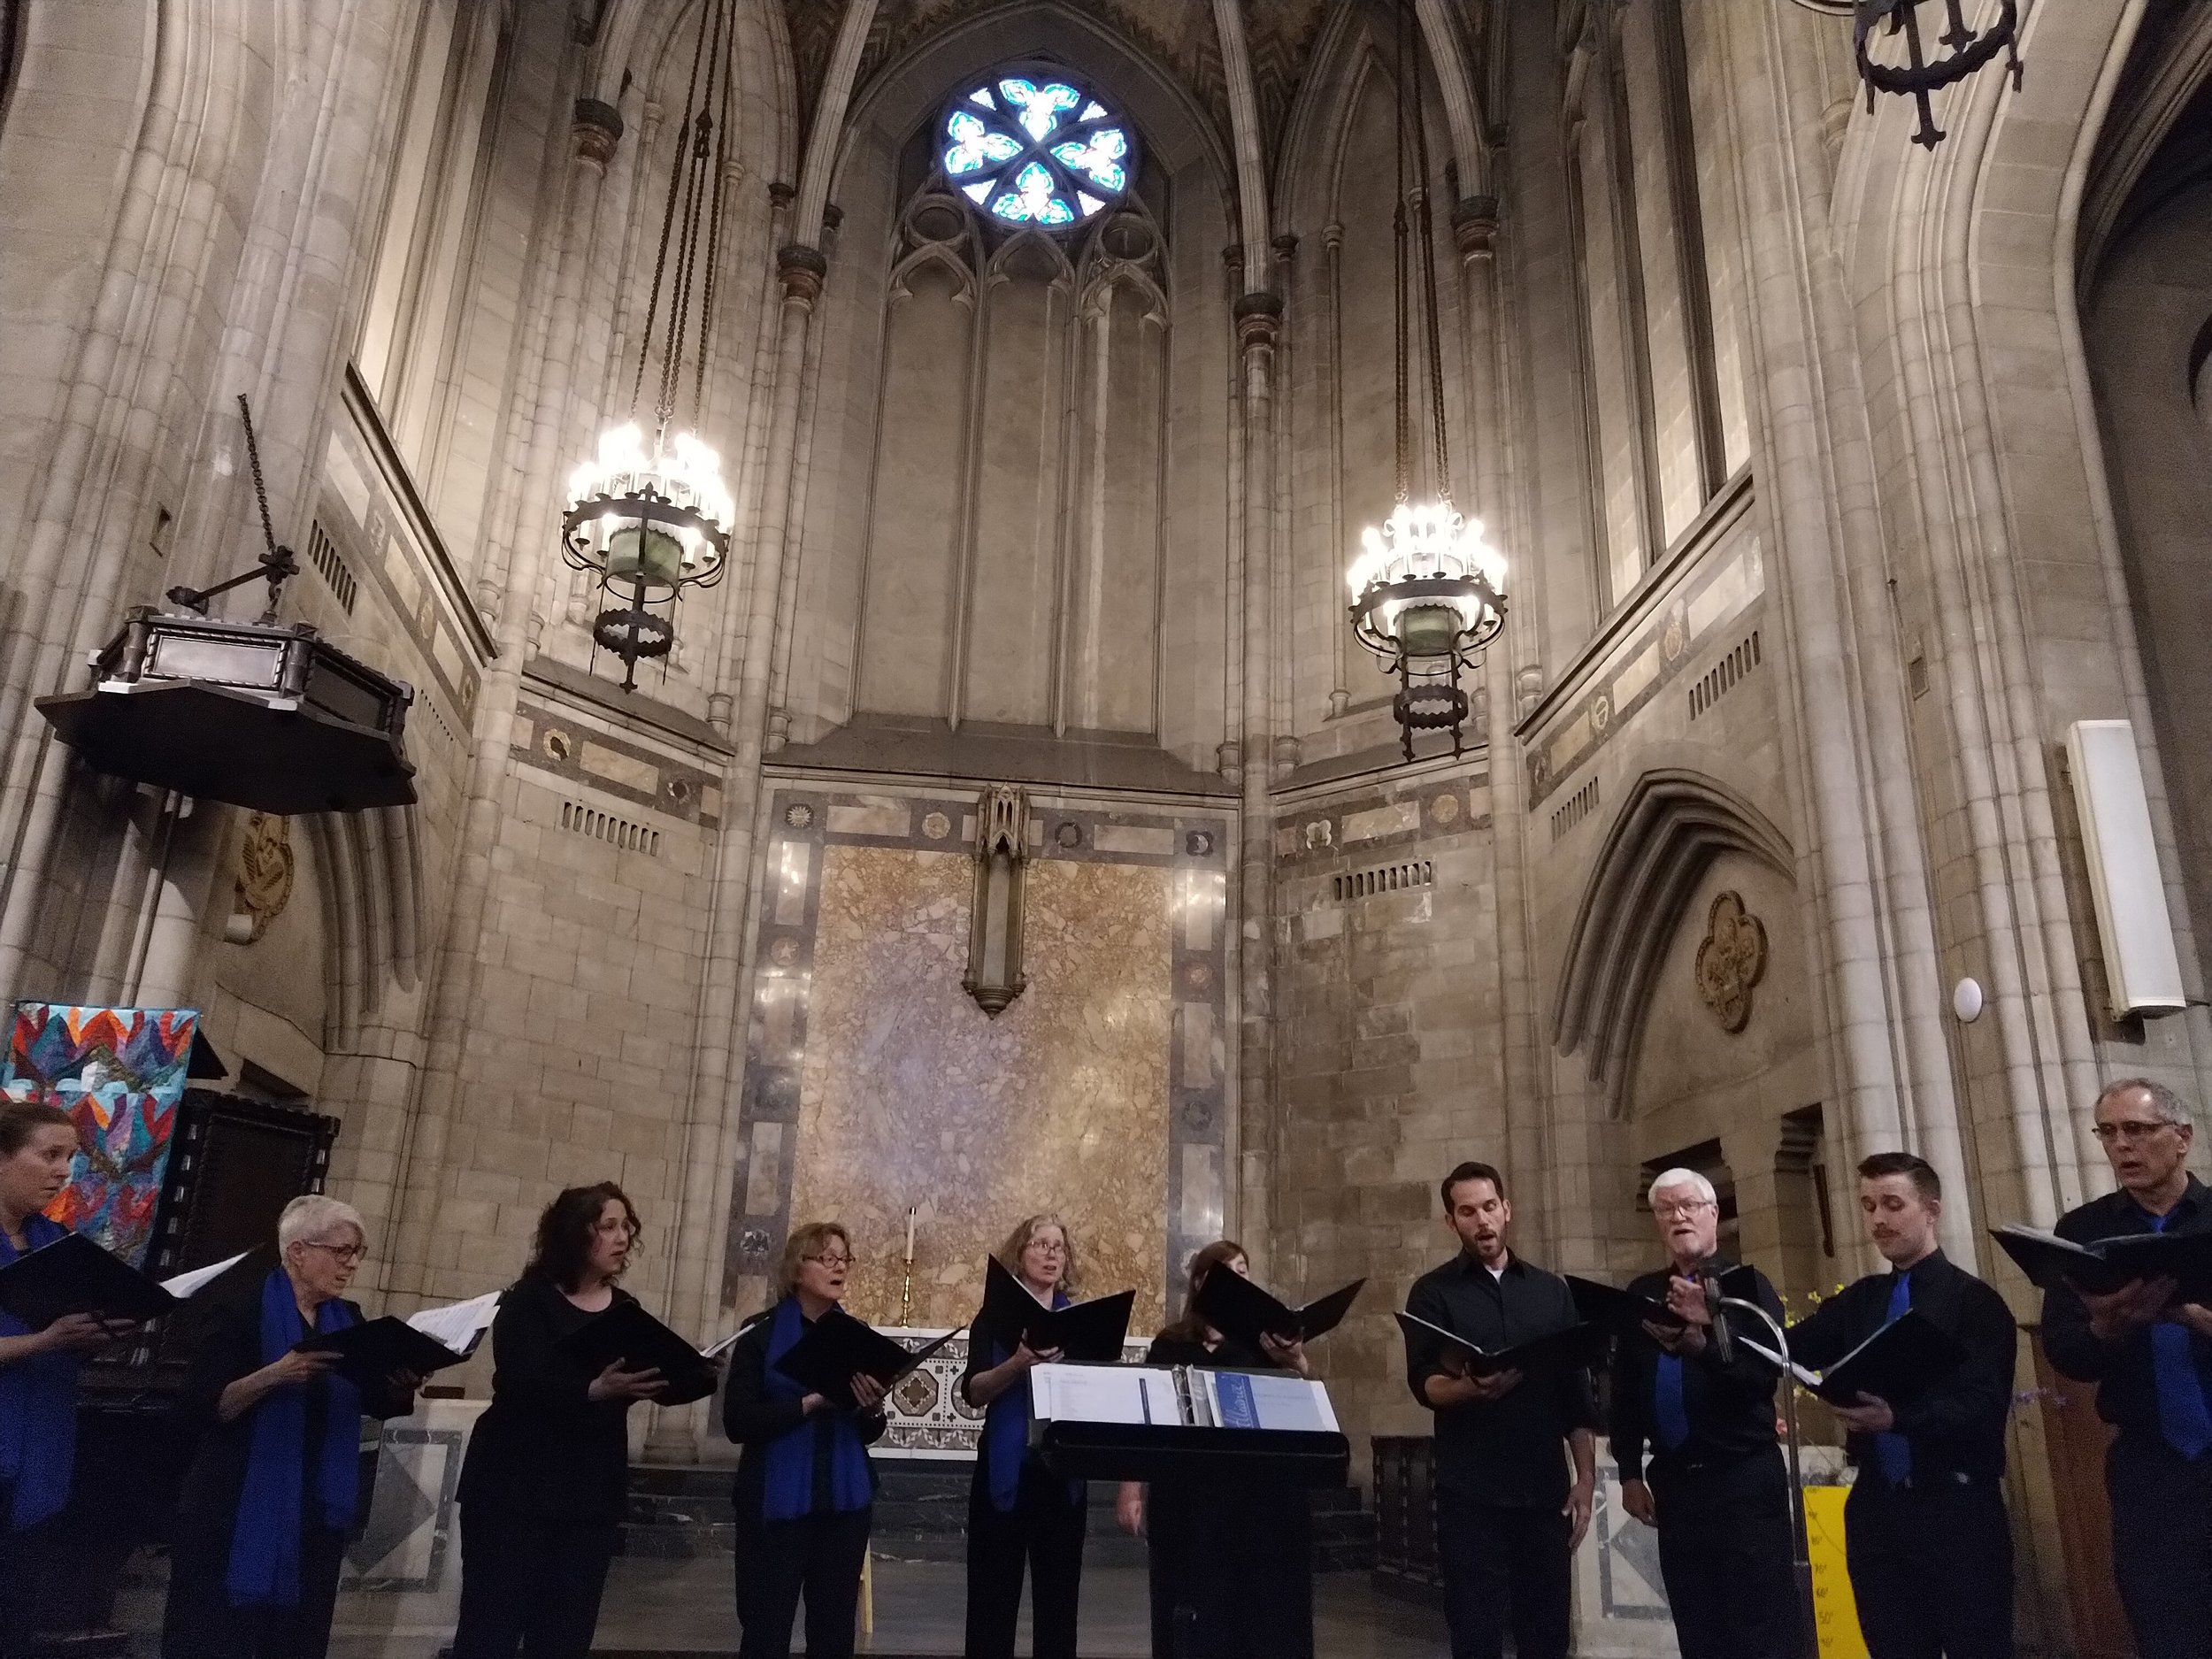 Lux Cantorum Chicago - is a unique sacred choral ensemble with a rich spiritual tradition and an ever-expanding repertoire. For more than 70 years, LCC has enlightened, educated and entertained the people of Chicago and the world with joyful reflections of our shared human experience.